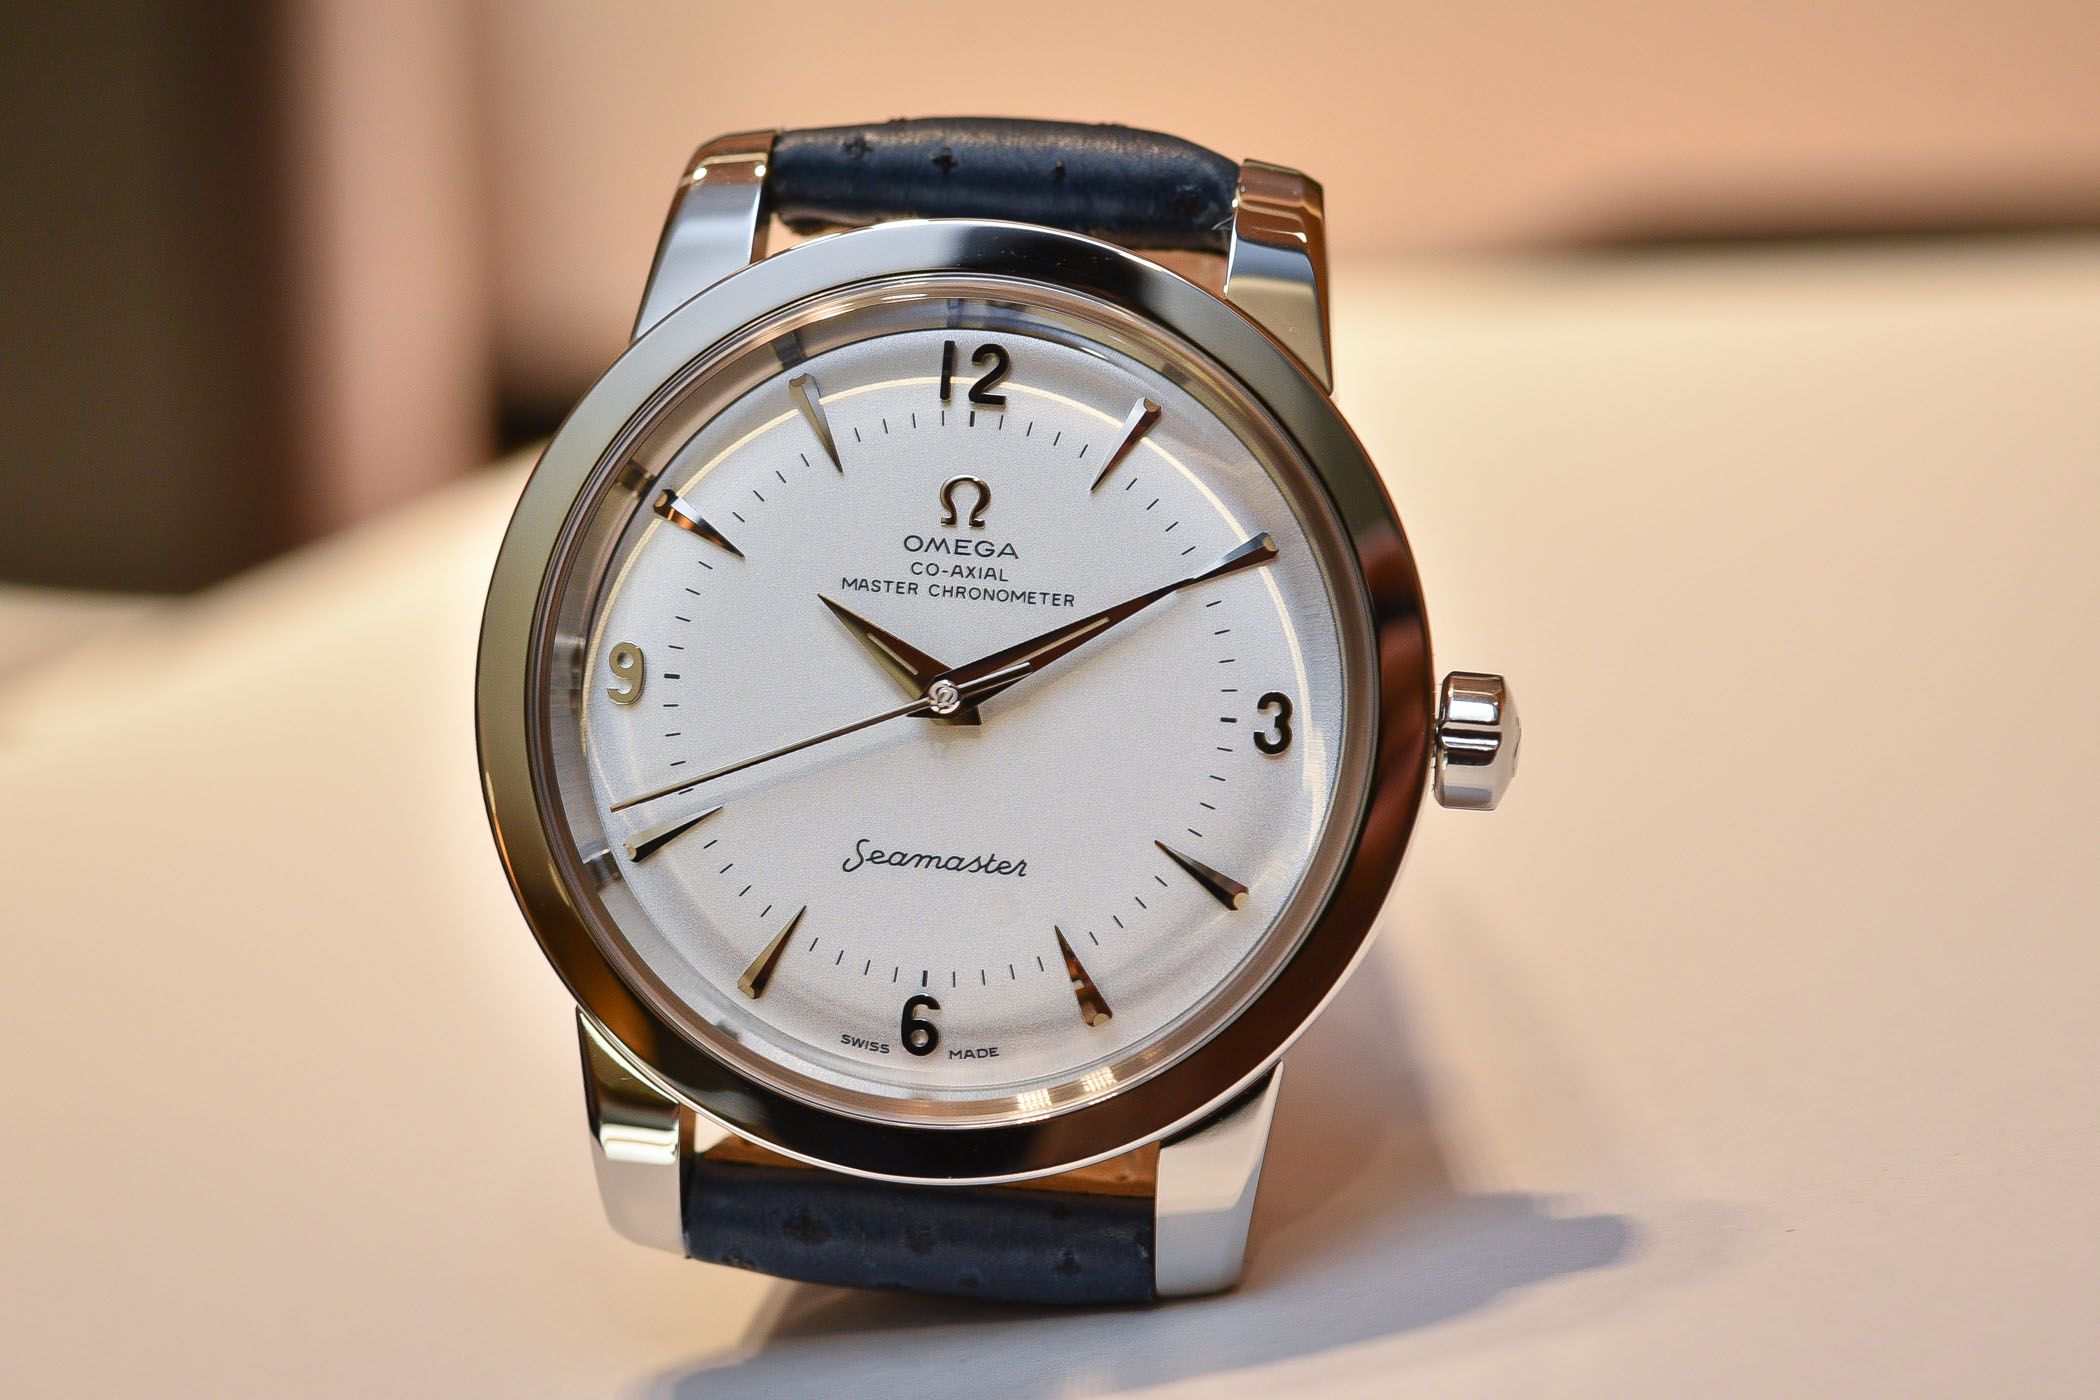 Hands On Omega Seamaster 1948 Limited Editions Baselworld 2018 Specs Price Omega Seamaster Omega Baselworld